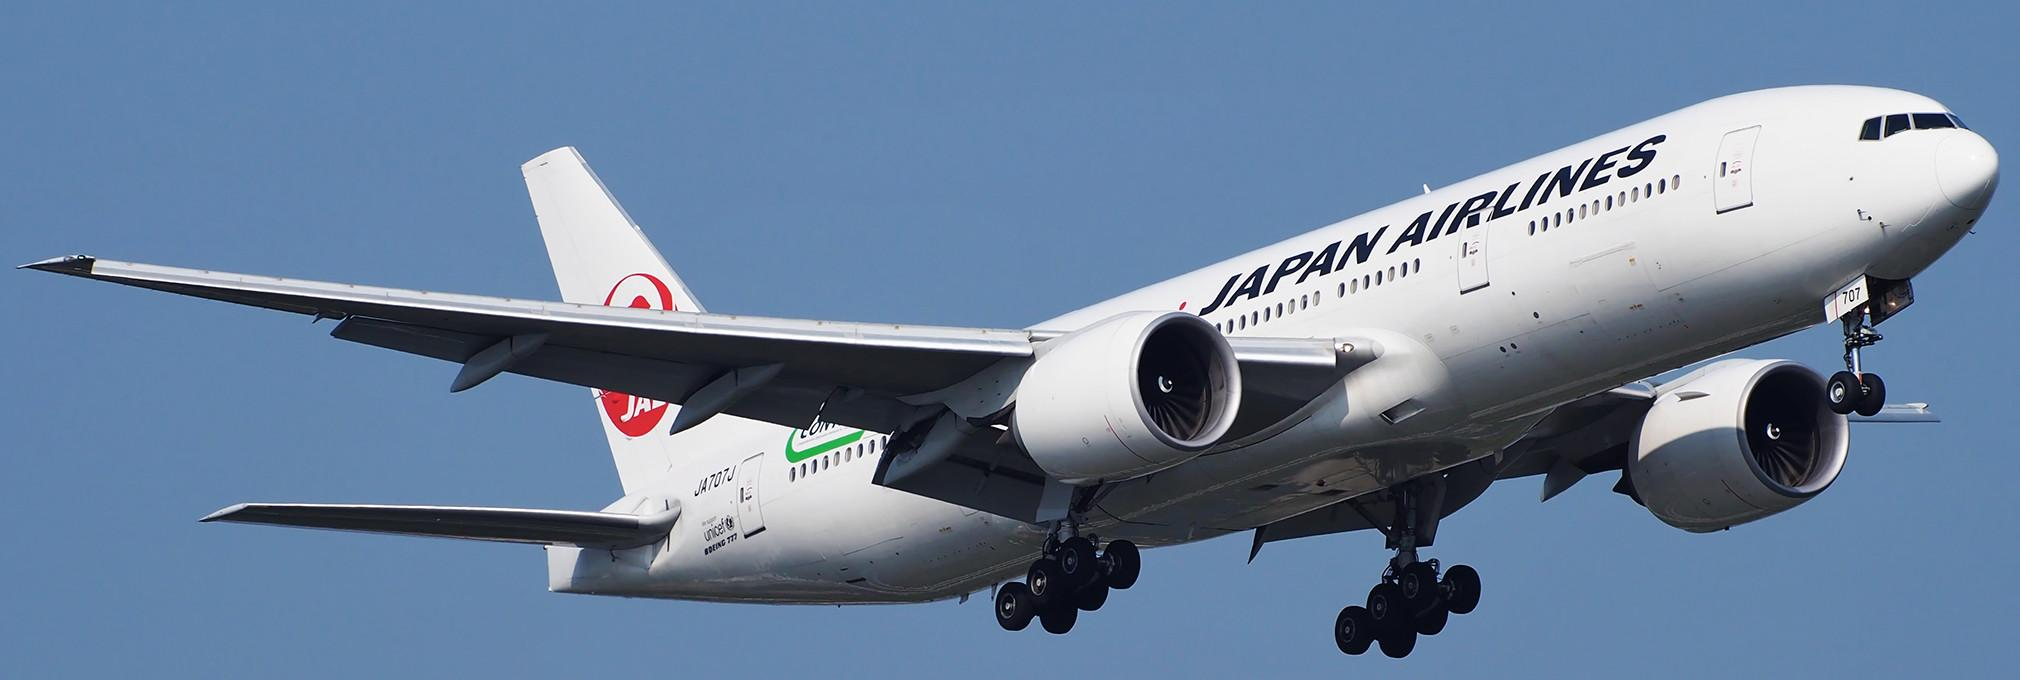 Japan Airlines Seeks Approval To Include Iberia Into Current Joint ...